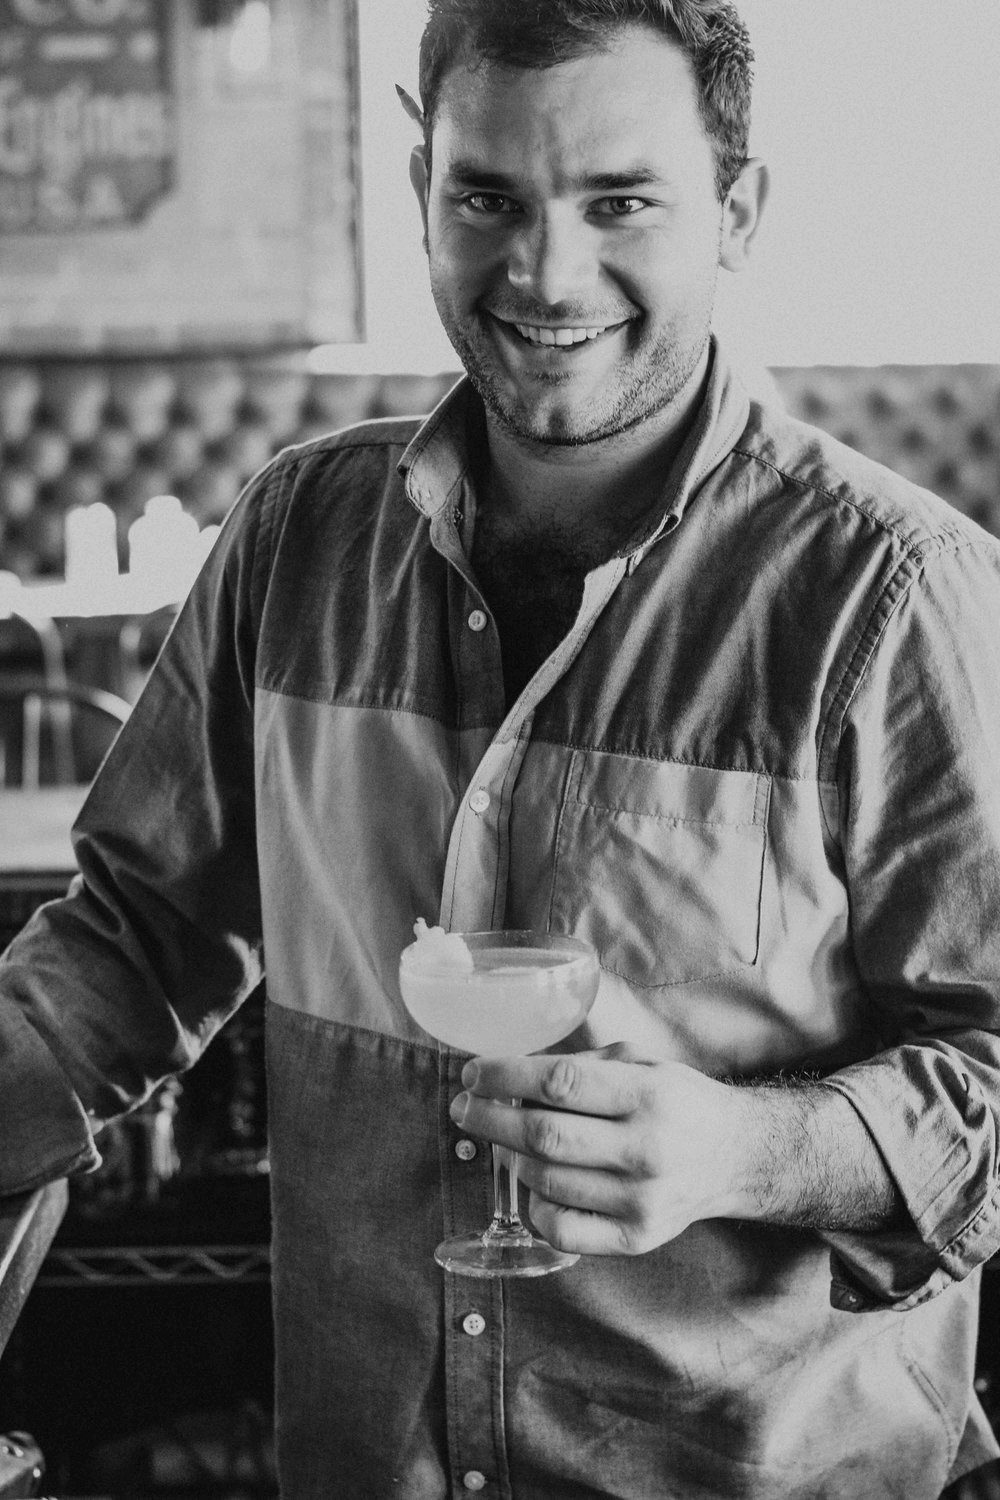 Nick Georgetti, Bar Manager